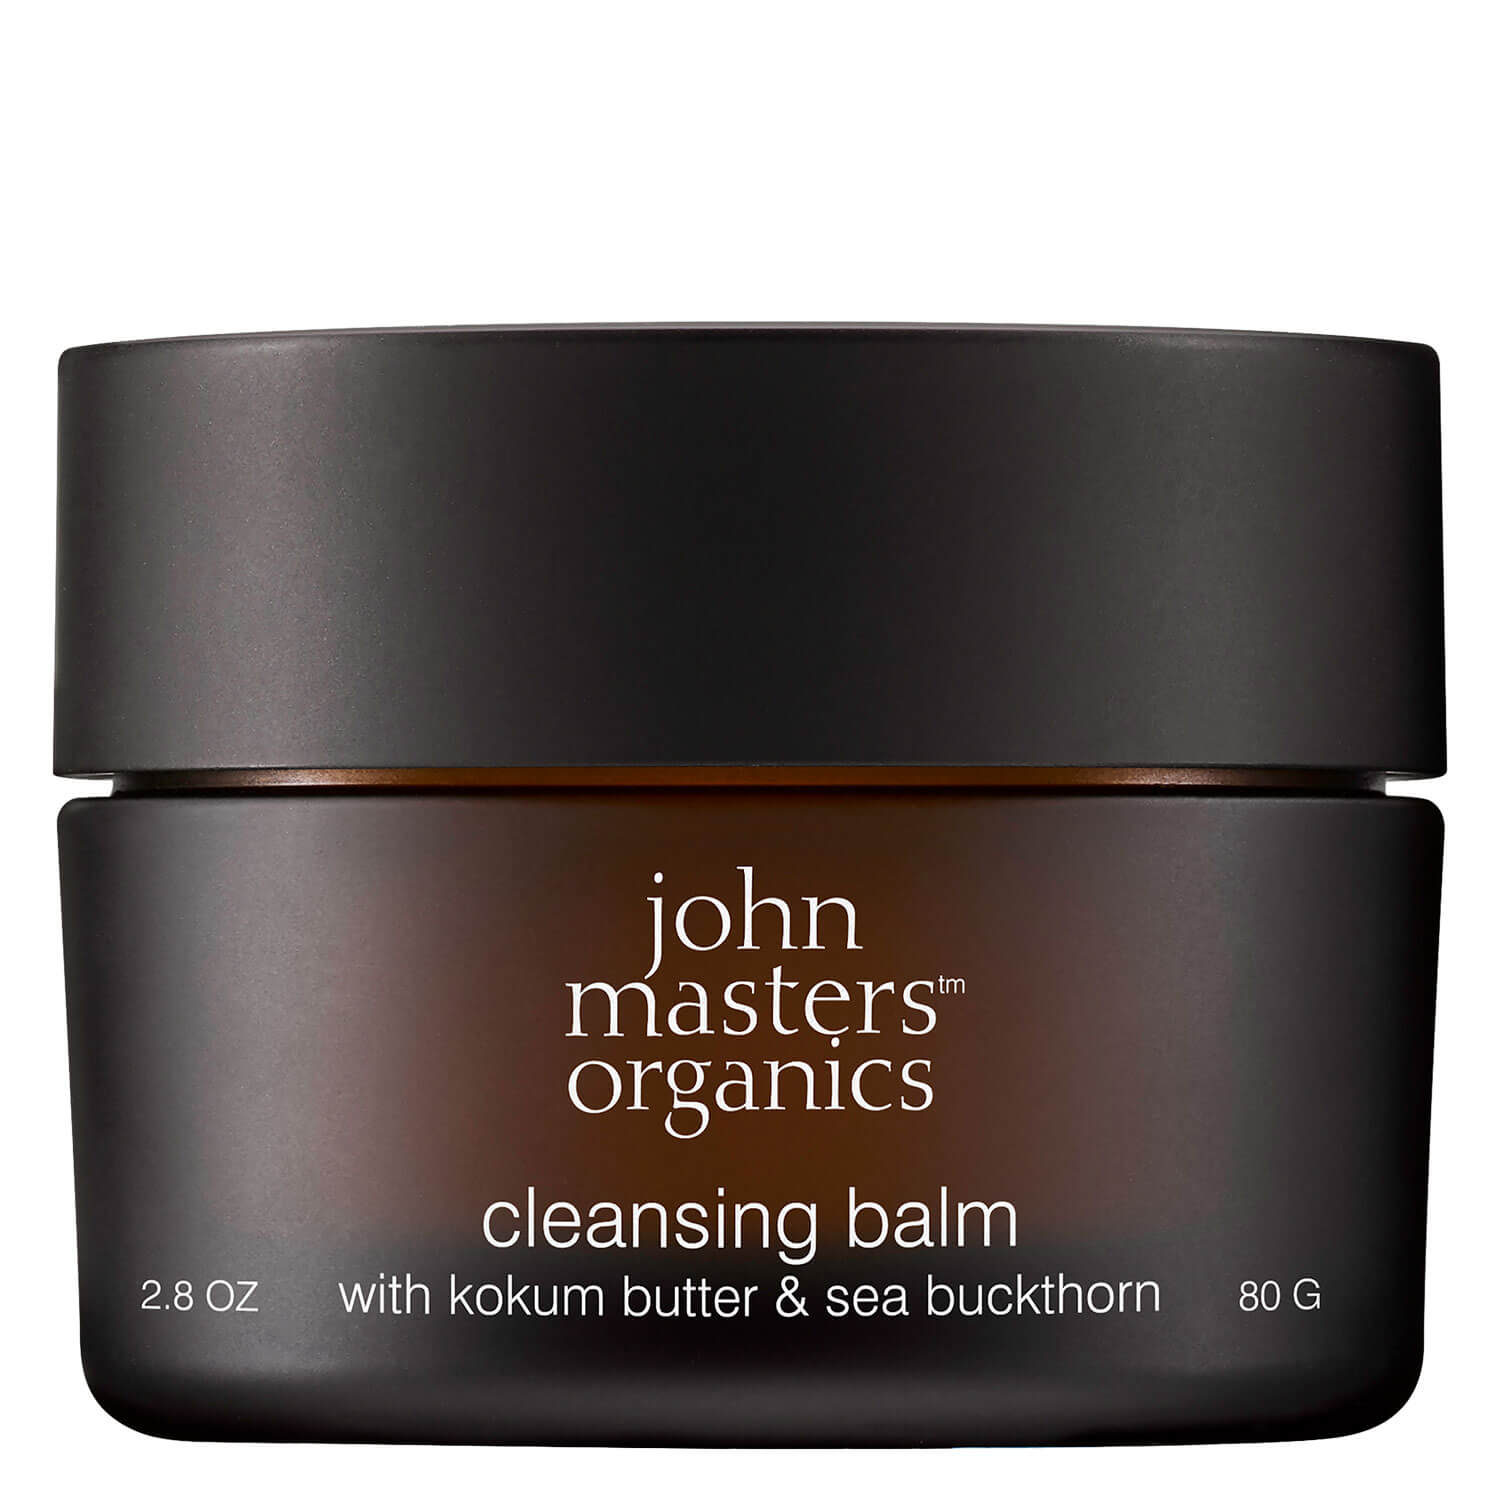 JMO Skin & Body Care - Cleansing Balm with Kokum Butter & Sea Buckthorn